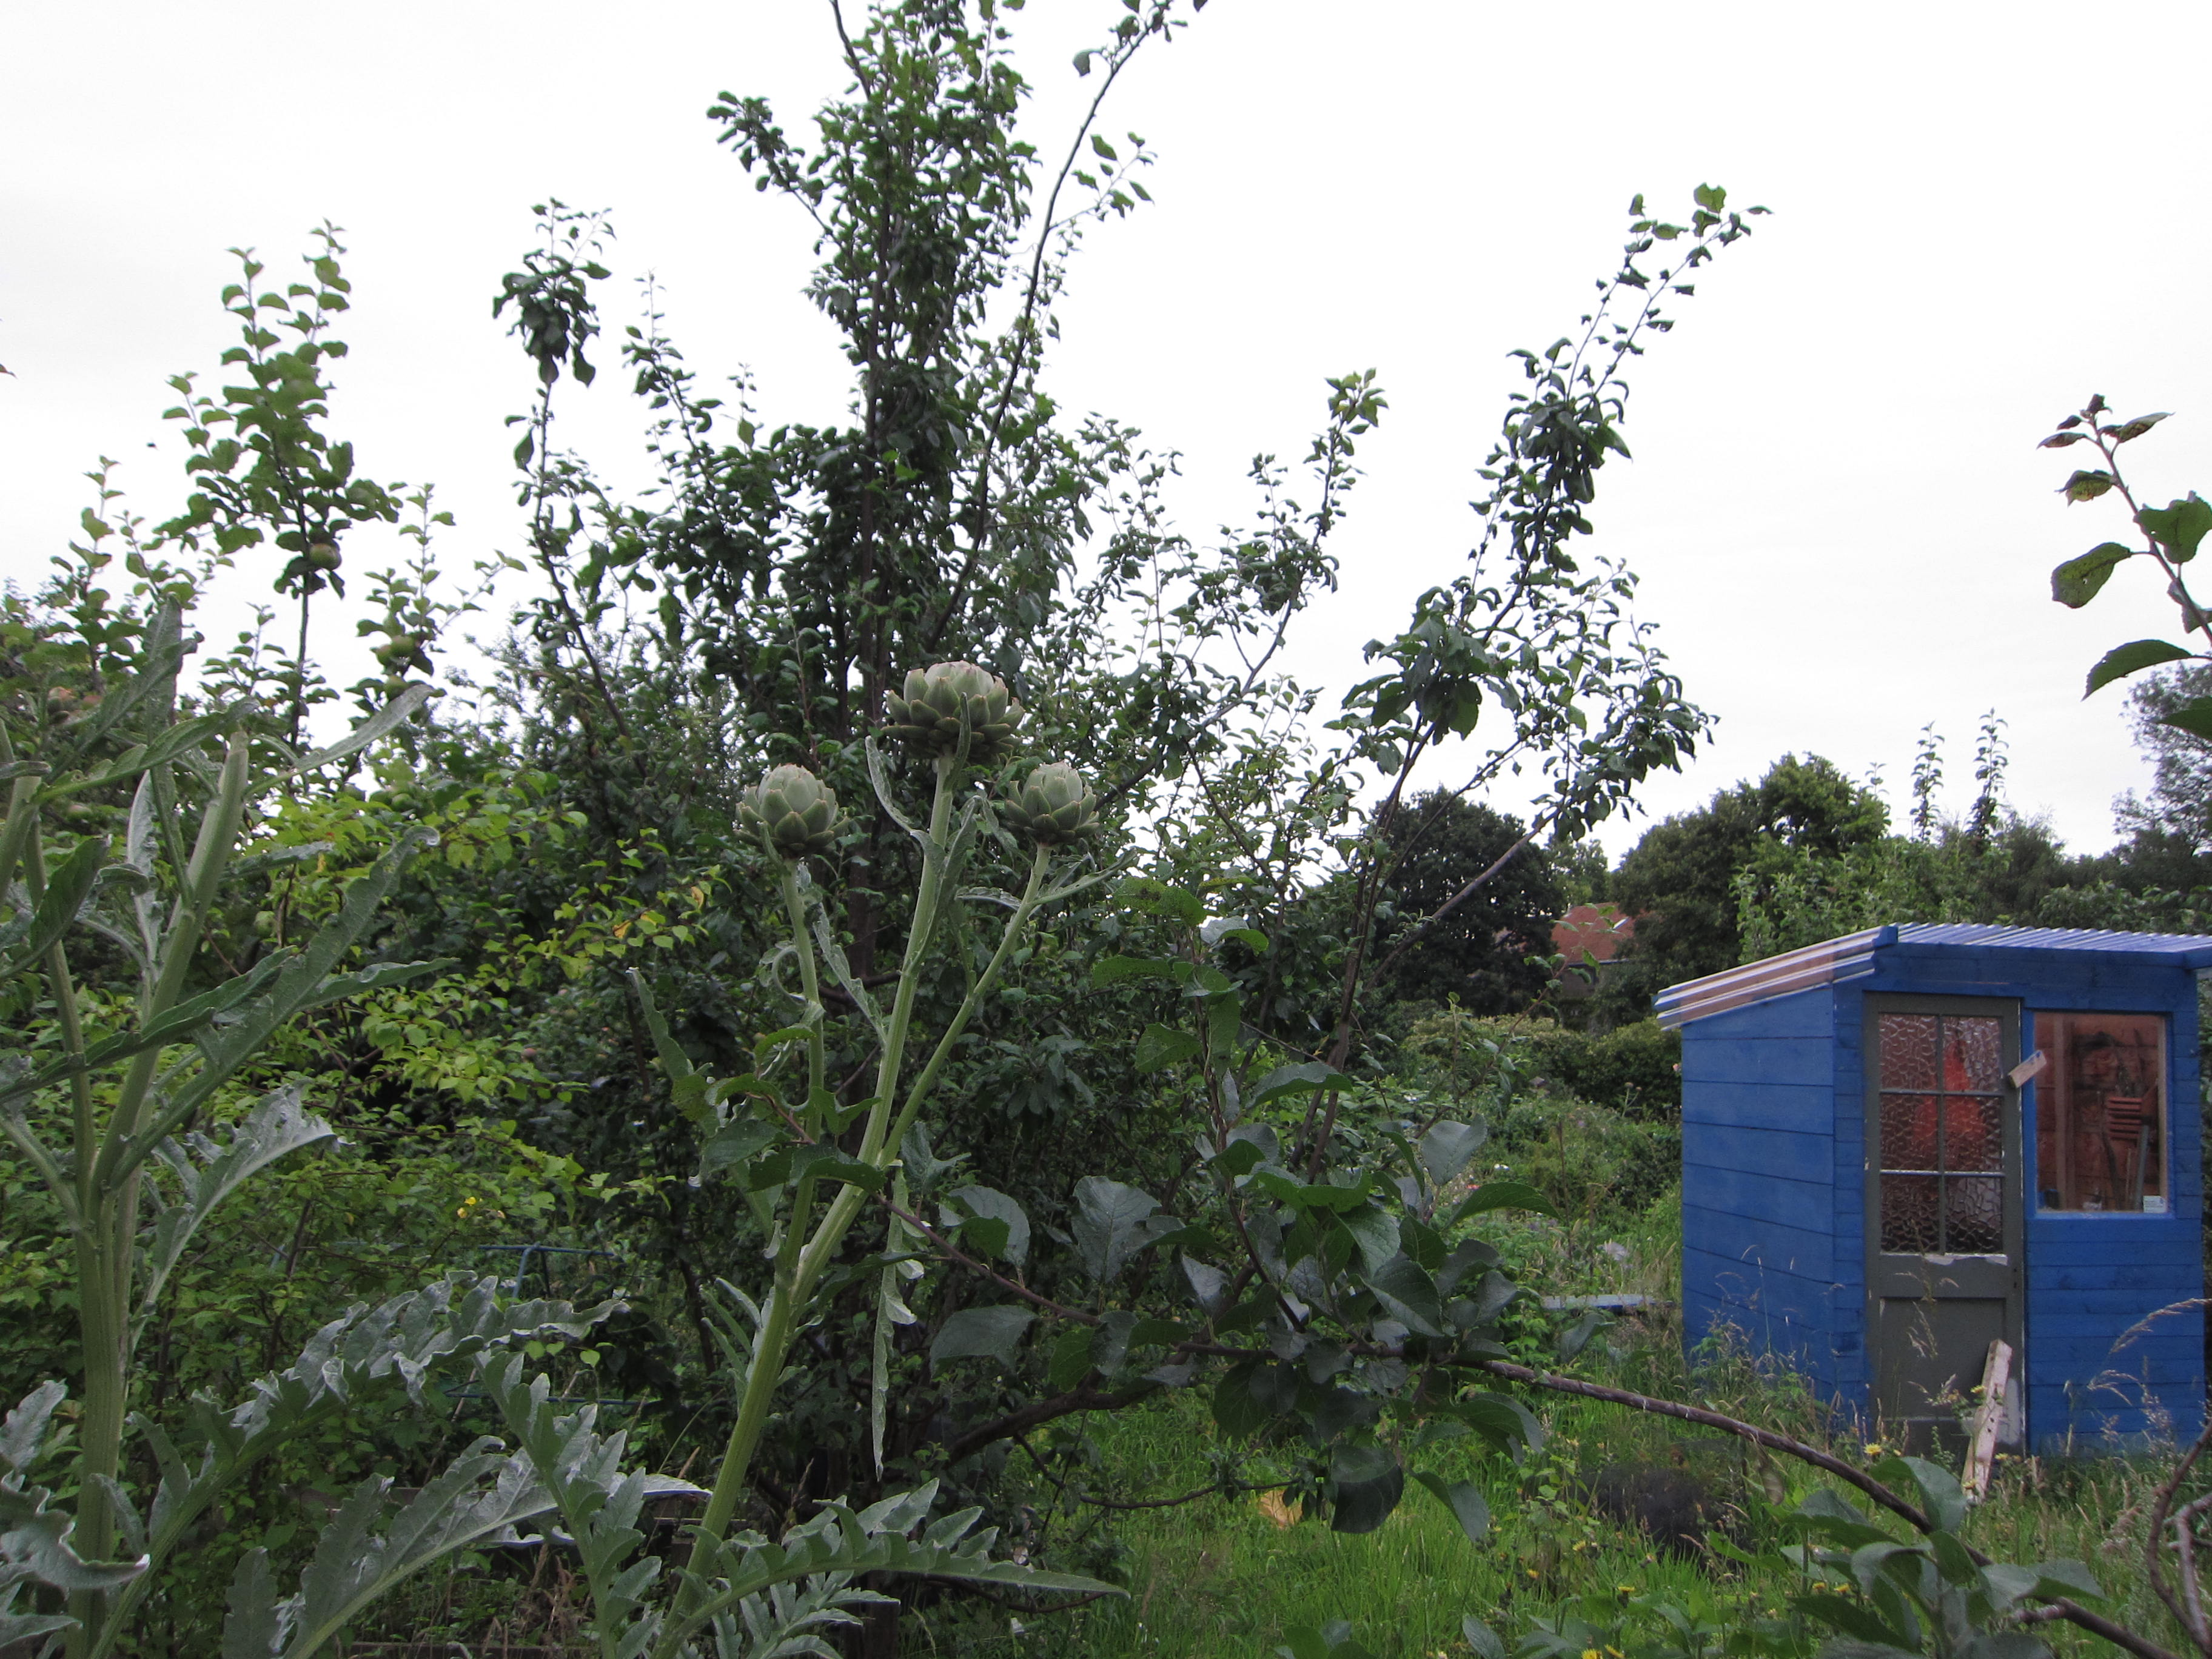 Large allotments had plenty of room for charming storage sheds and artichokes.